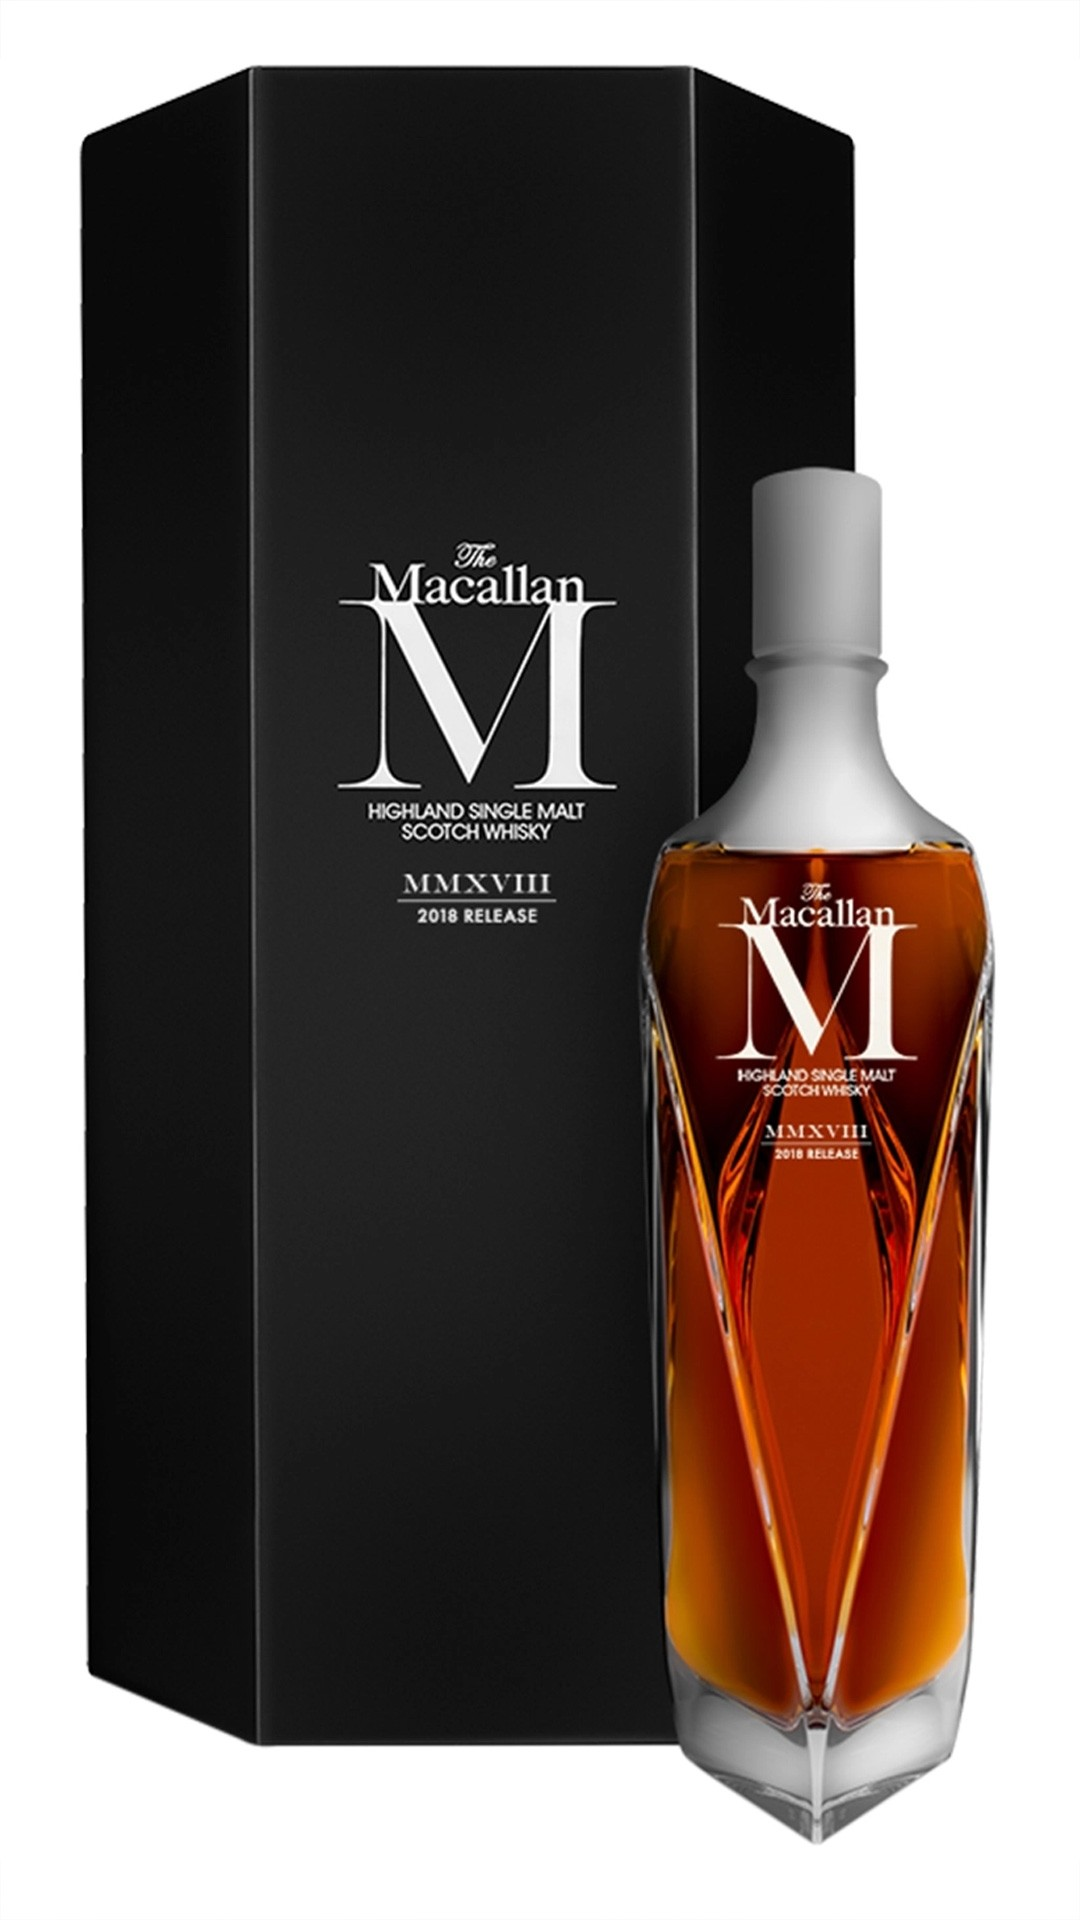 2018 Macallan M from the Macallan Master Decanter series